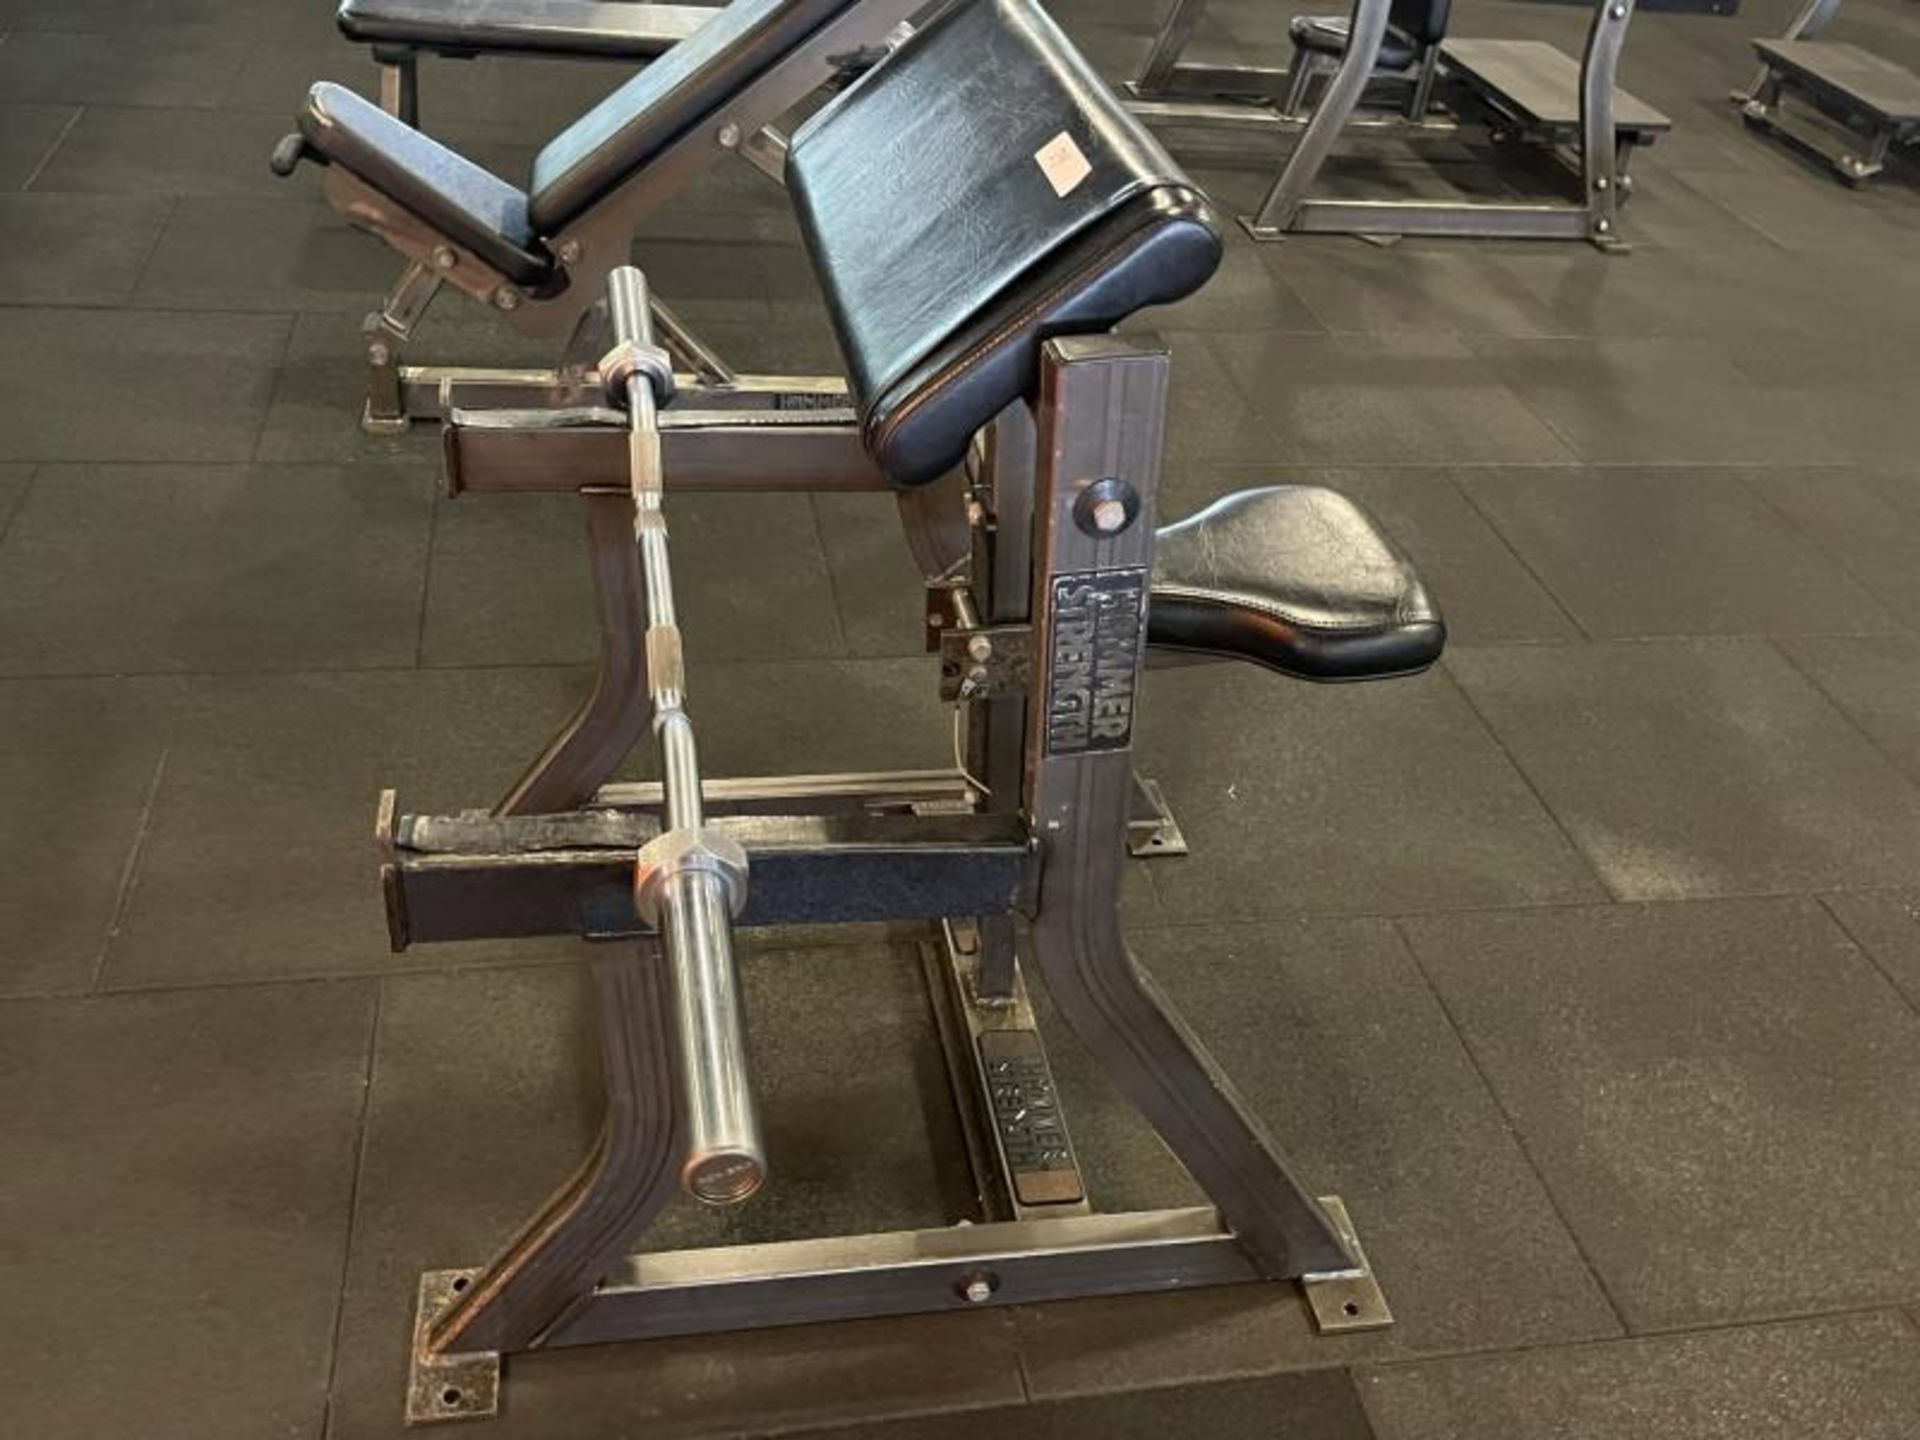 Hammer Strength Bicep/Preacher Curl Bench with Curl Bar M:B01 - Image 2 of 4